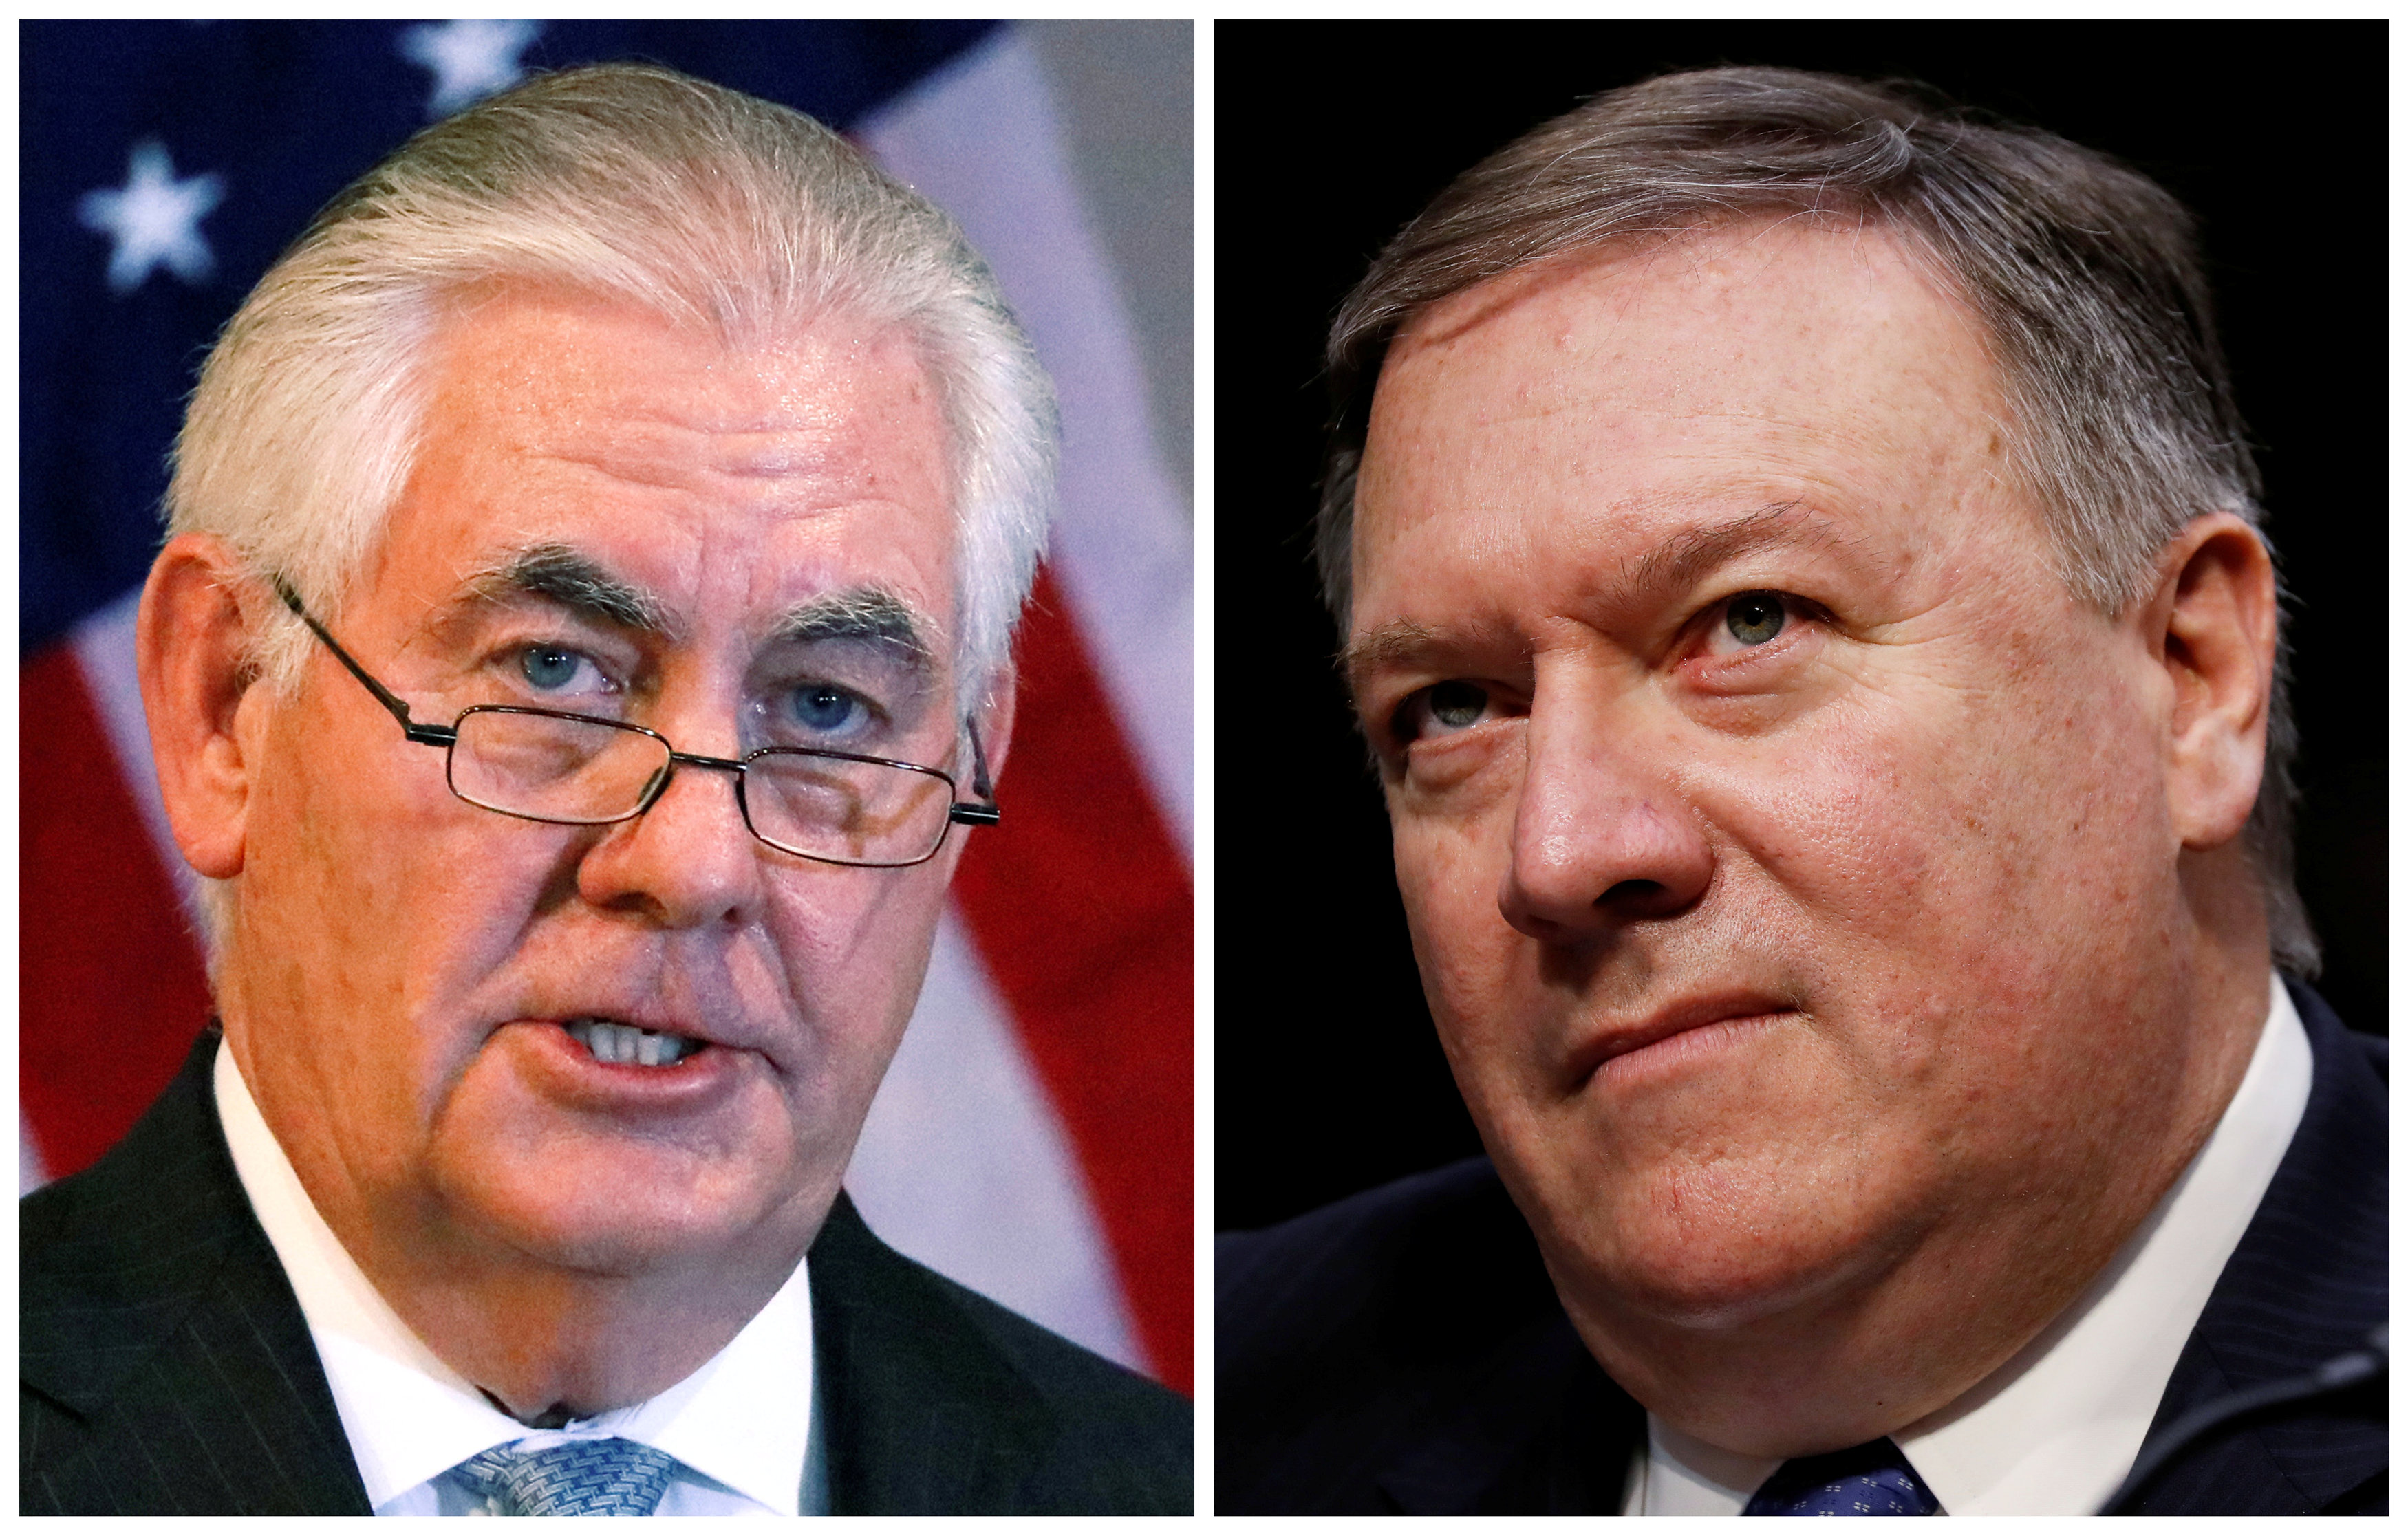 FILE PHOTO: A combination photo shows U.S. Secretary of State Rex Tillerson (L) in Addis Ababa, Ethiopia, March 8, 2018, and Central Intelligence Agency (CIA) Director Mike Pompeo on Capitol Hill in Washington, DC, U.S., February 13, 2018 respectively. REUTERS/Jonathan Ernst (L) Aaron P. Bernstein (R)